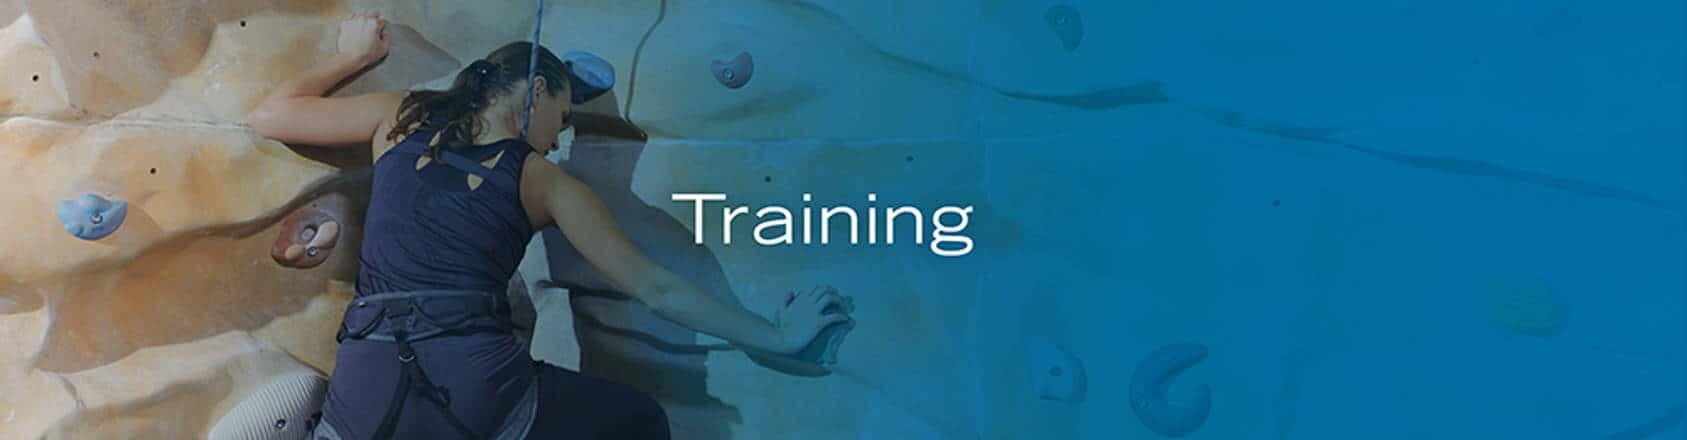 RefineM Training